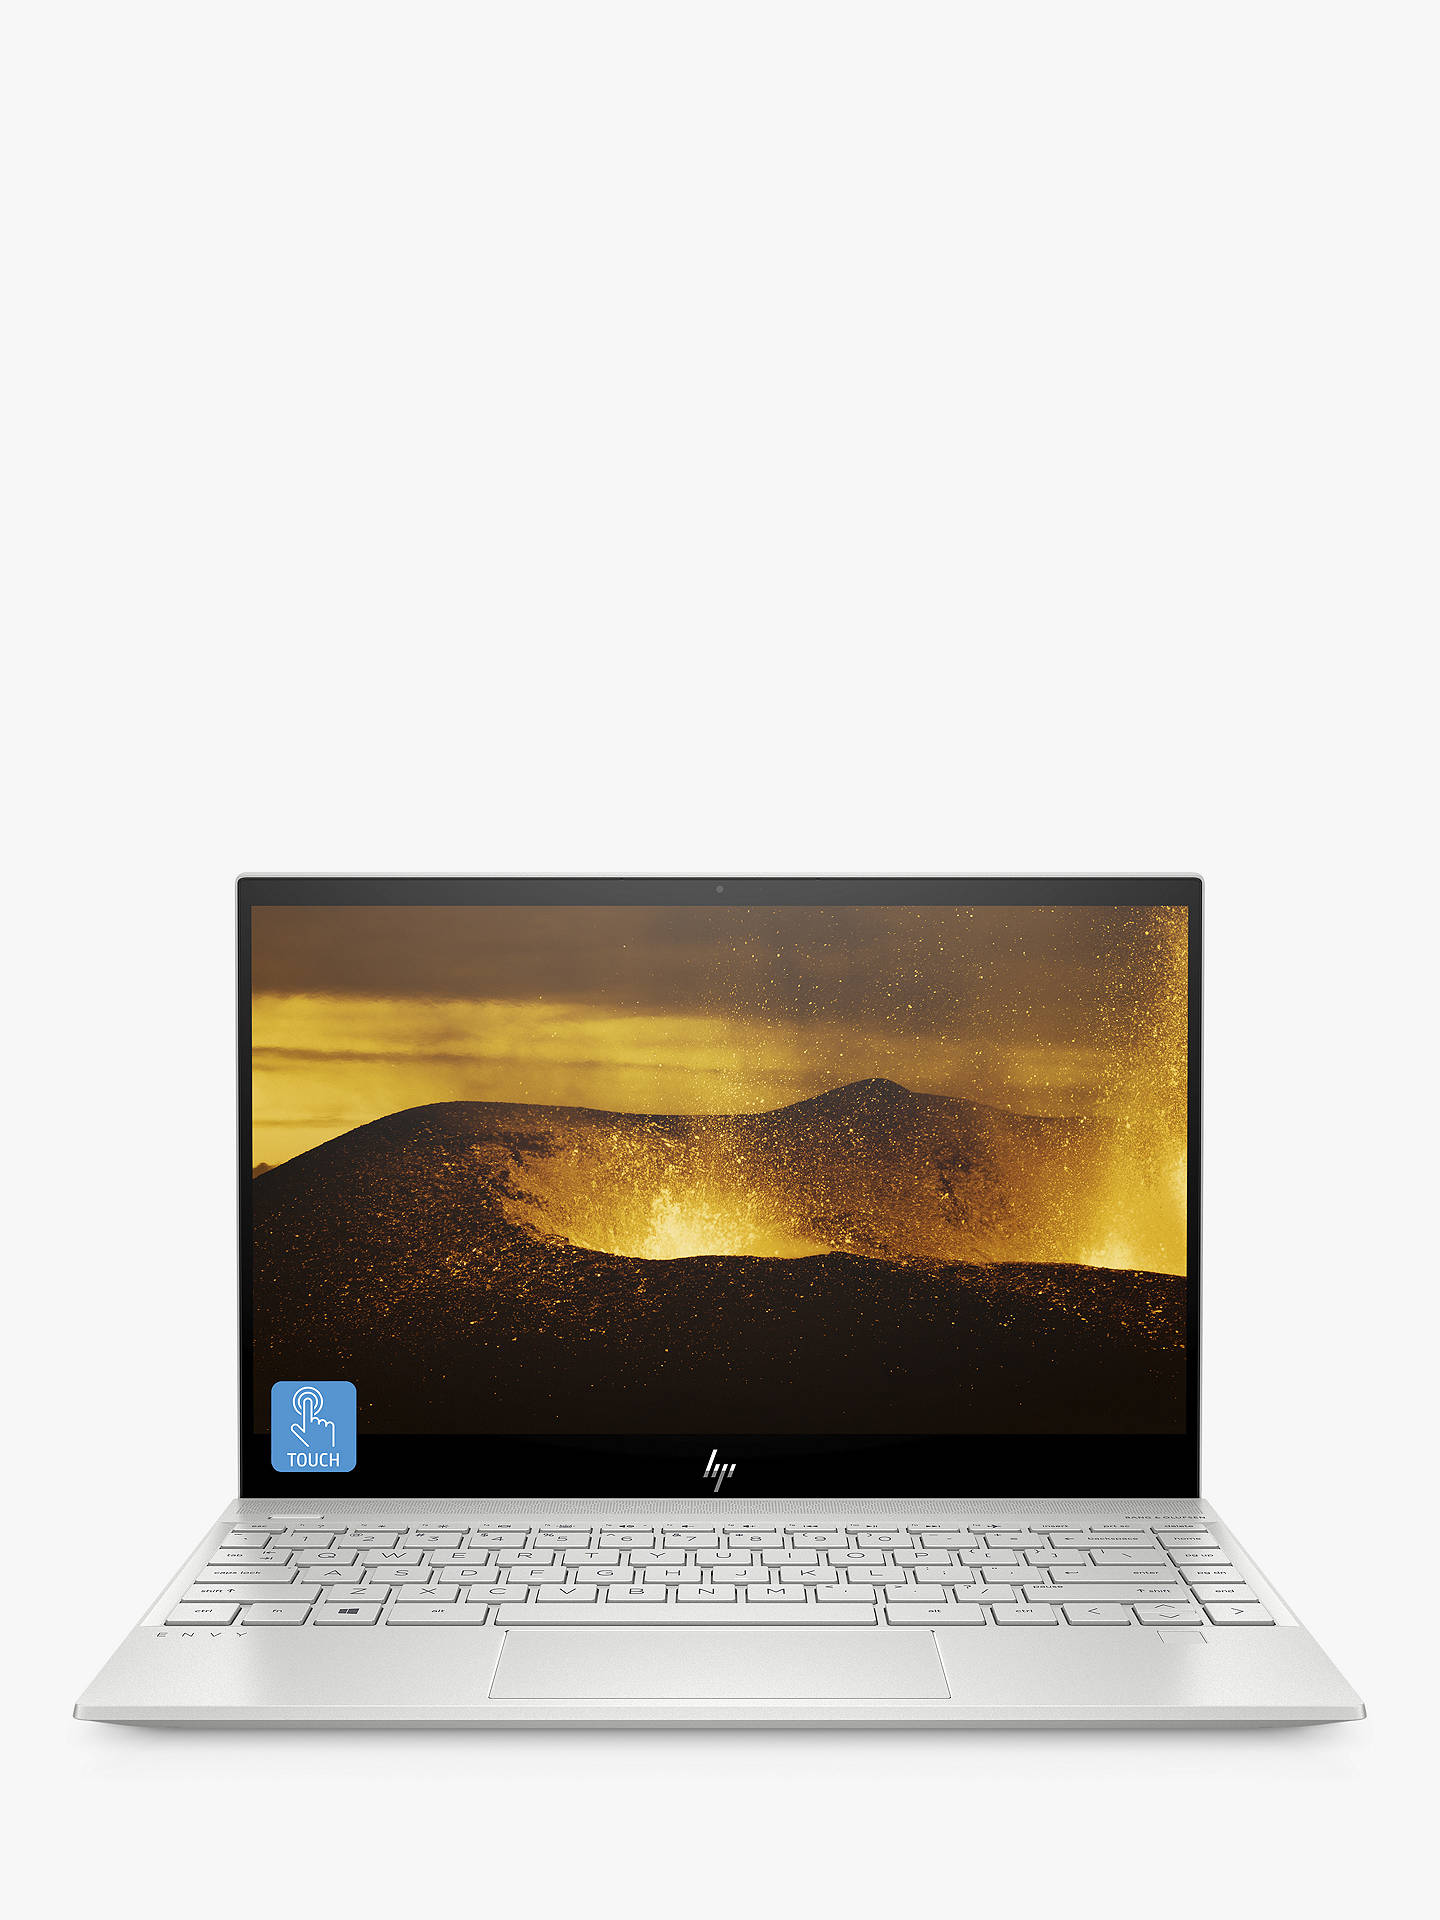 Best Student Laptop Deals: MacBooks, Chromebooks and more